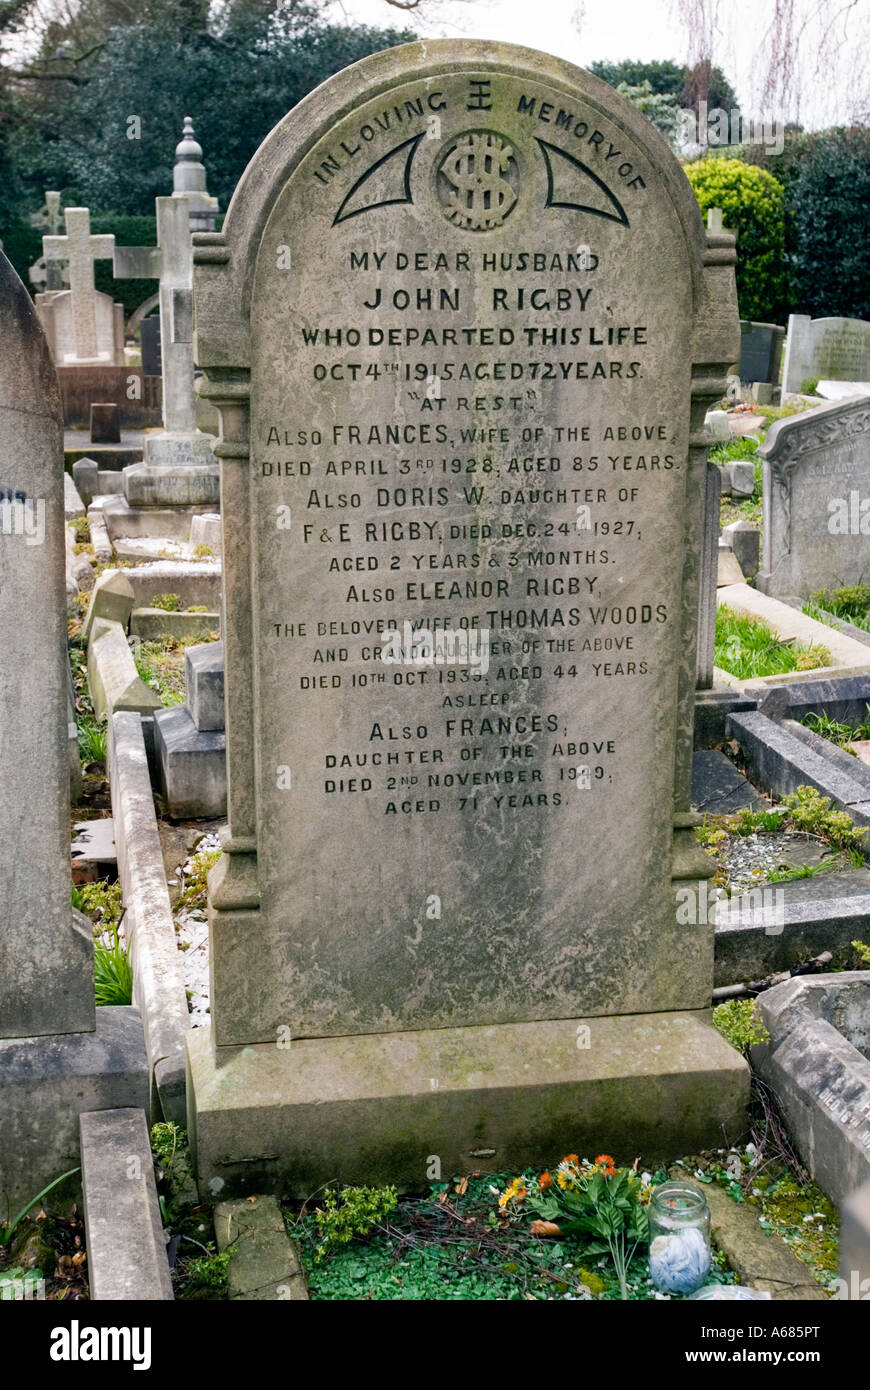 The headstone of Eleanor Rigby the person made famous in the song by the Beatles. - Stock Image